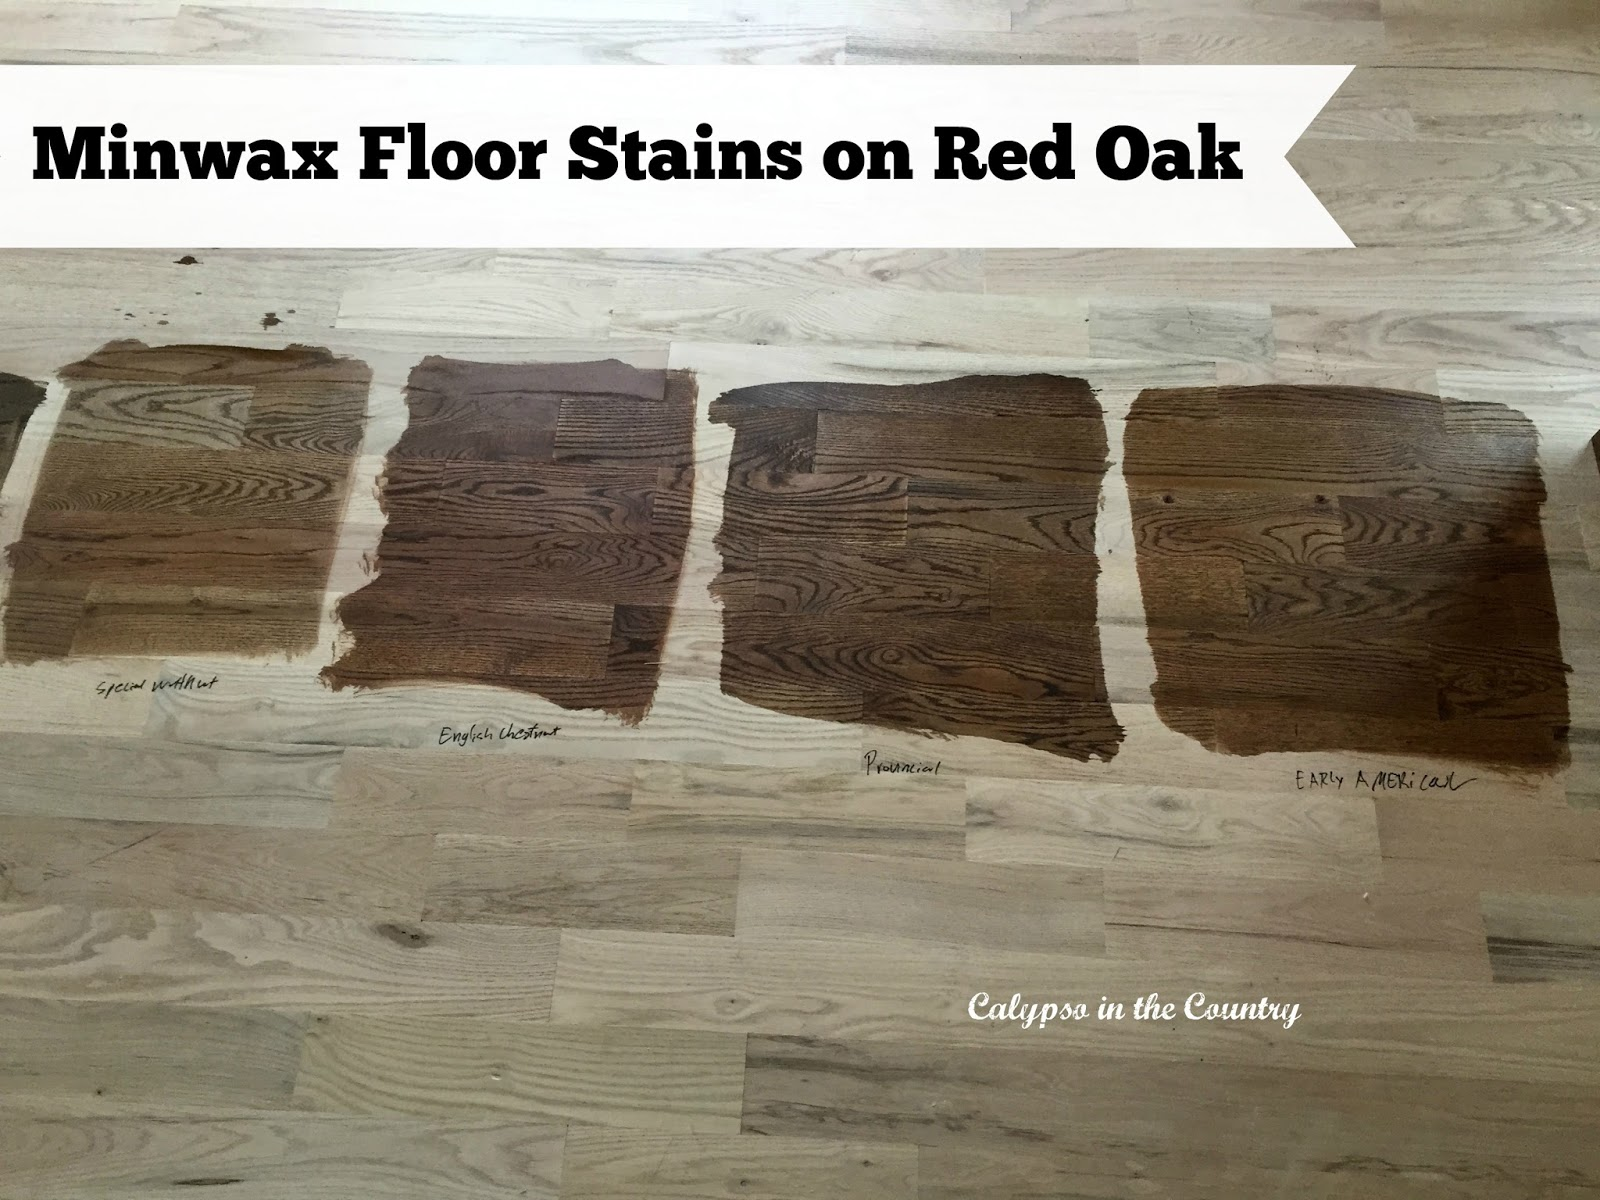 Minwax Floor Stains on red oak - Special Walnut, English Chestnut, Provincial and Early American